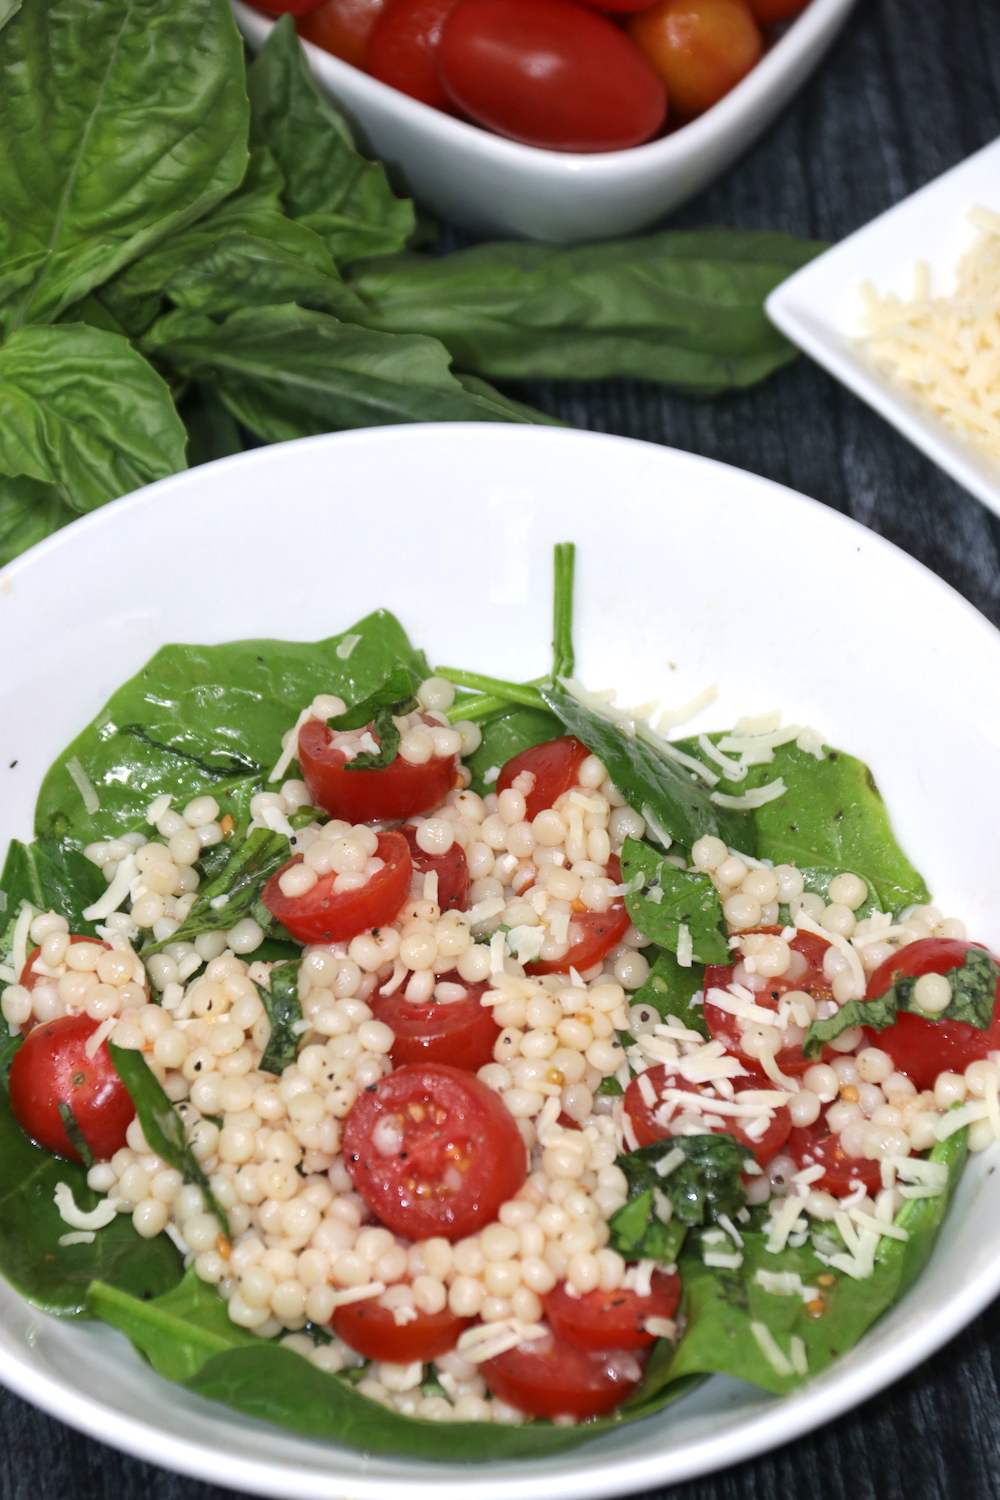 Italian Spinach Couscous Salad